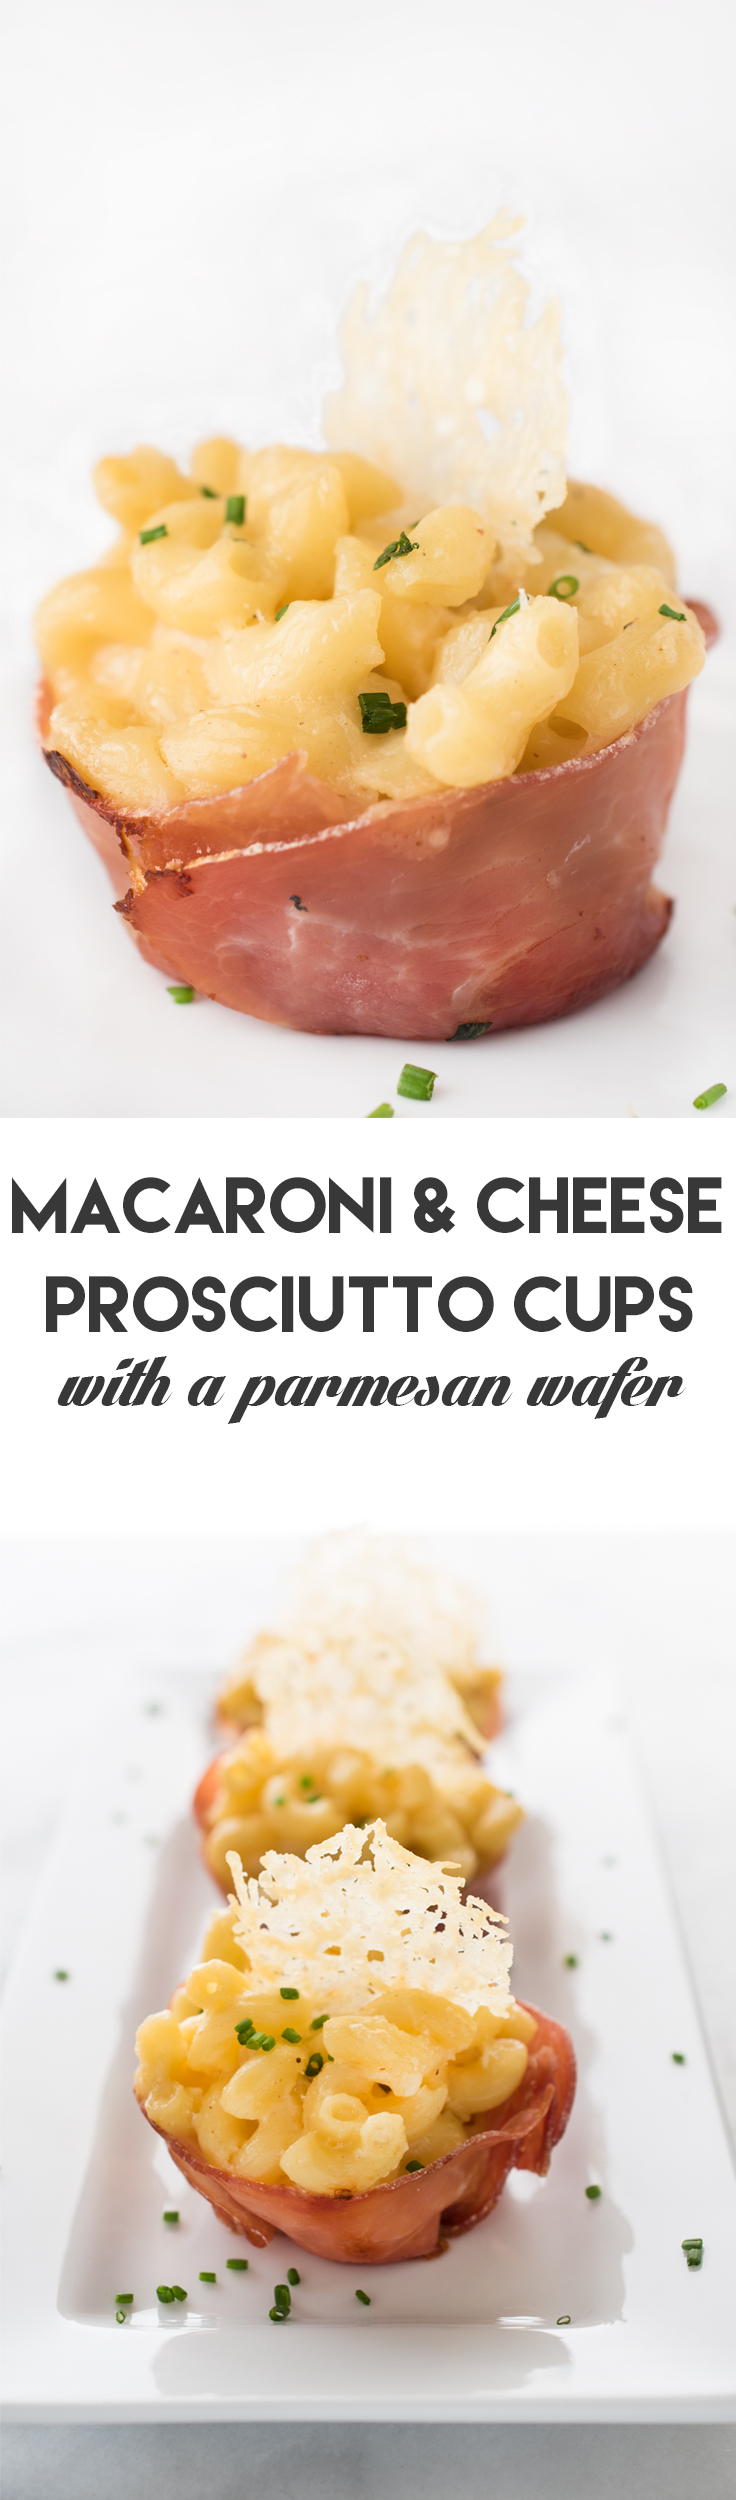 Photos - This Macaroni And Cheese With Prosciutto Hits A Great